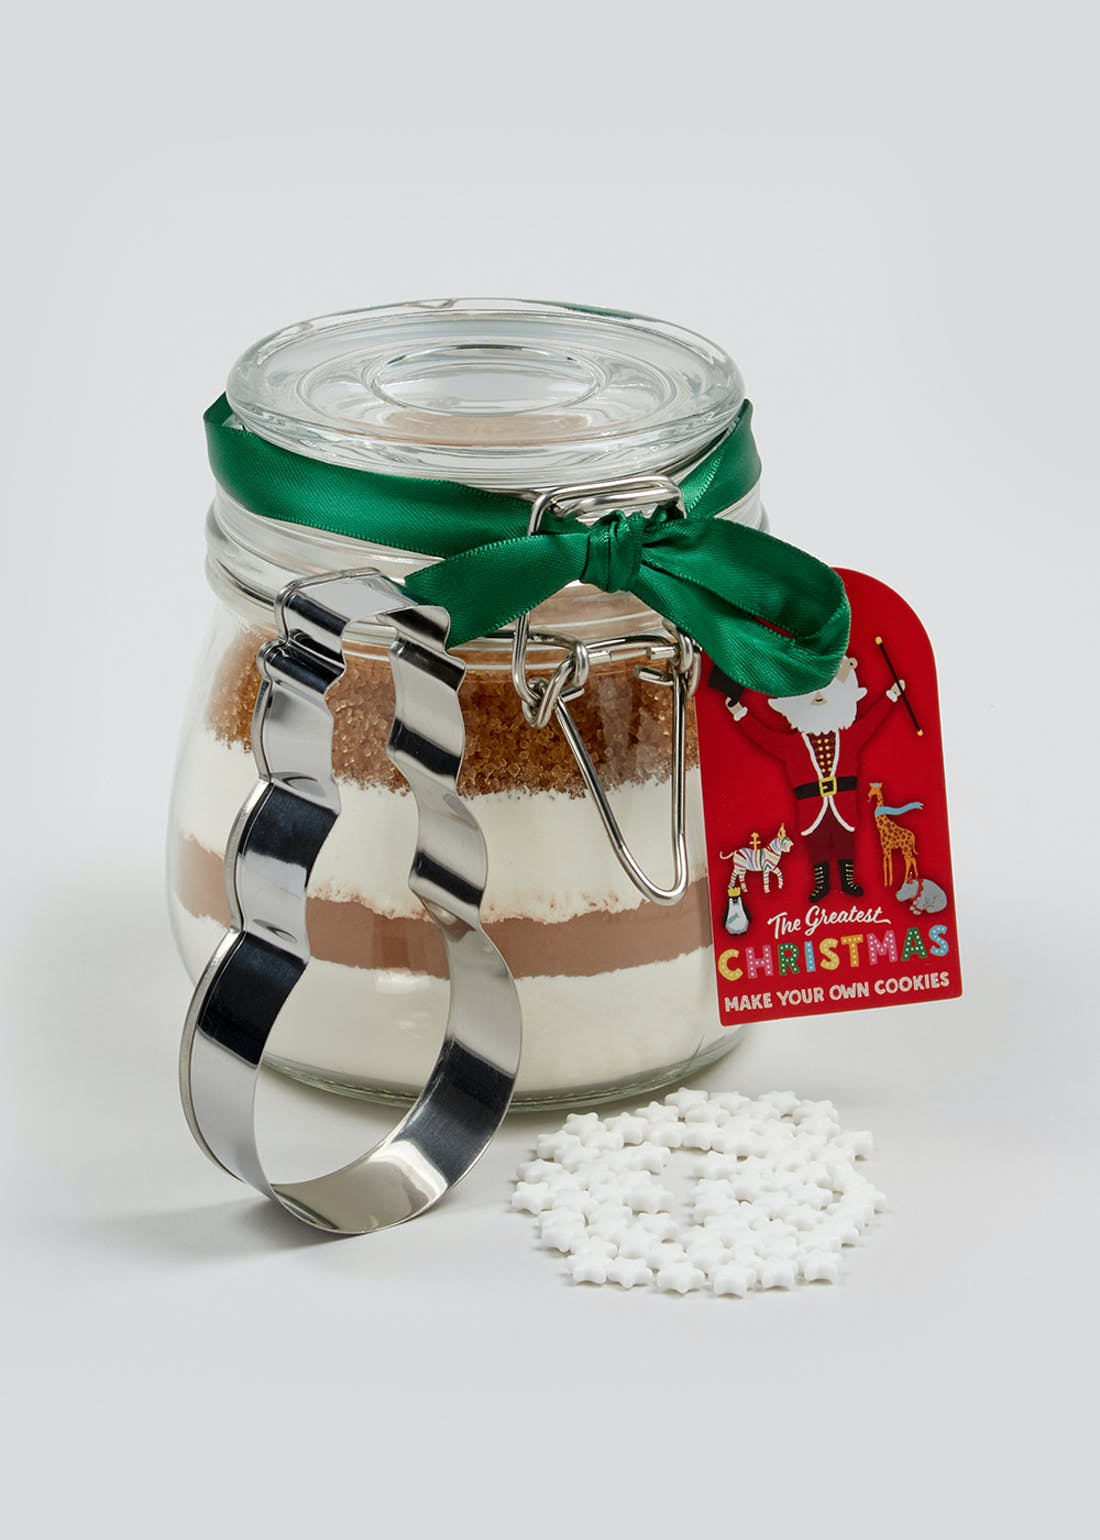 Christmas Cookie Jar Gift Set (14cm x 11cm x 10.5cm)